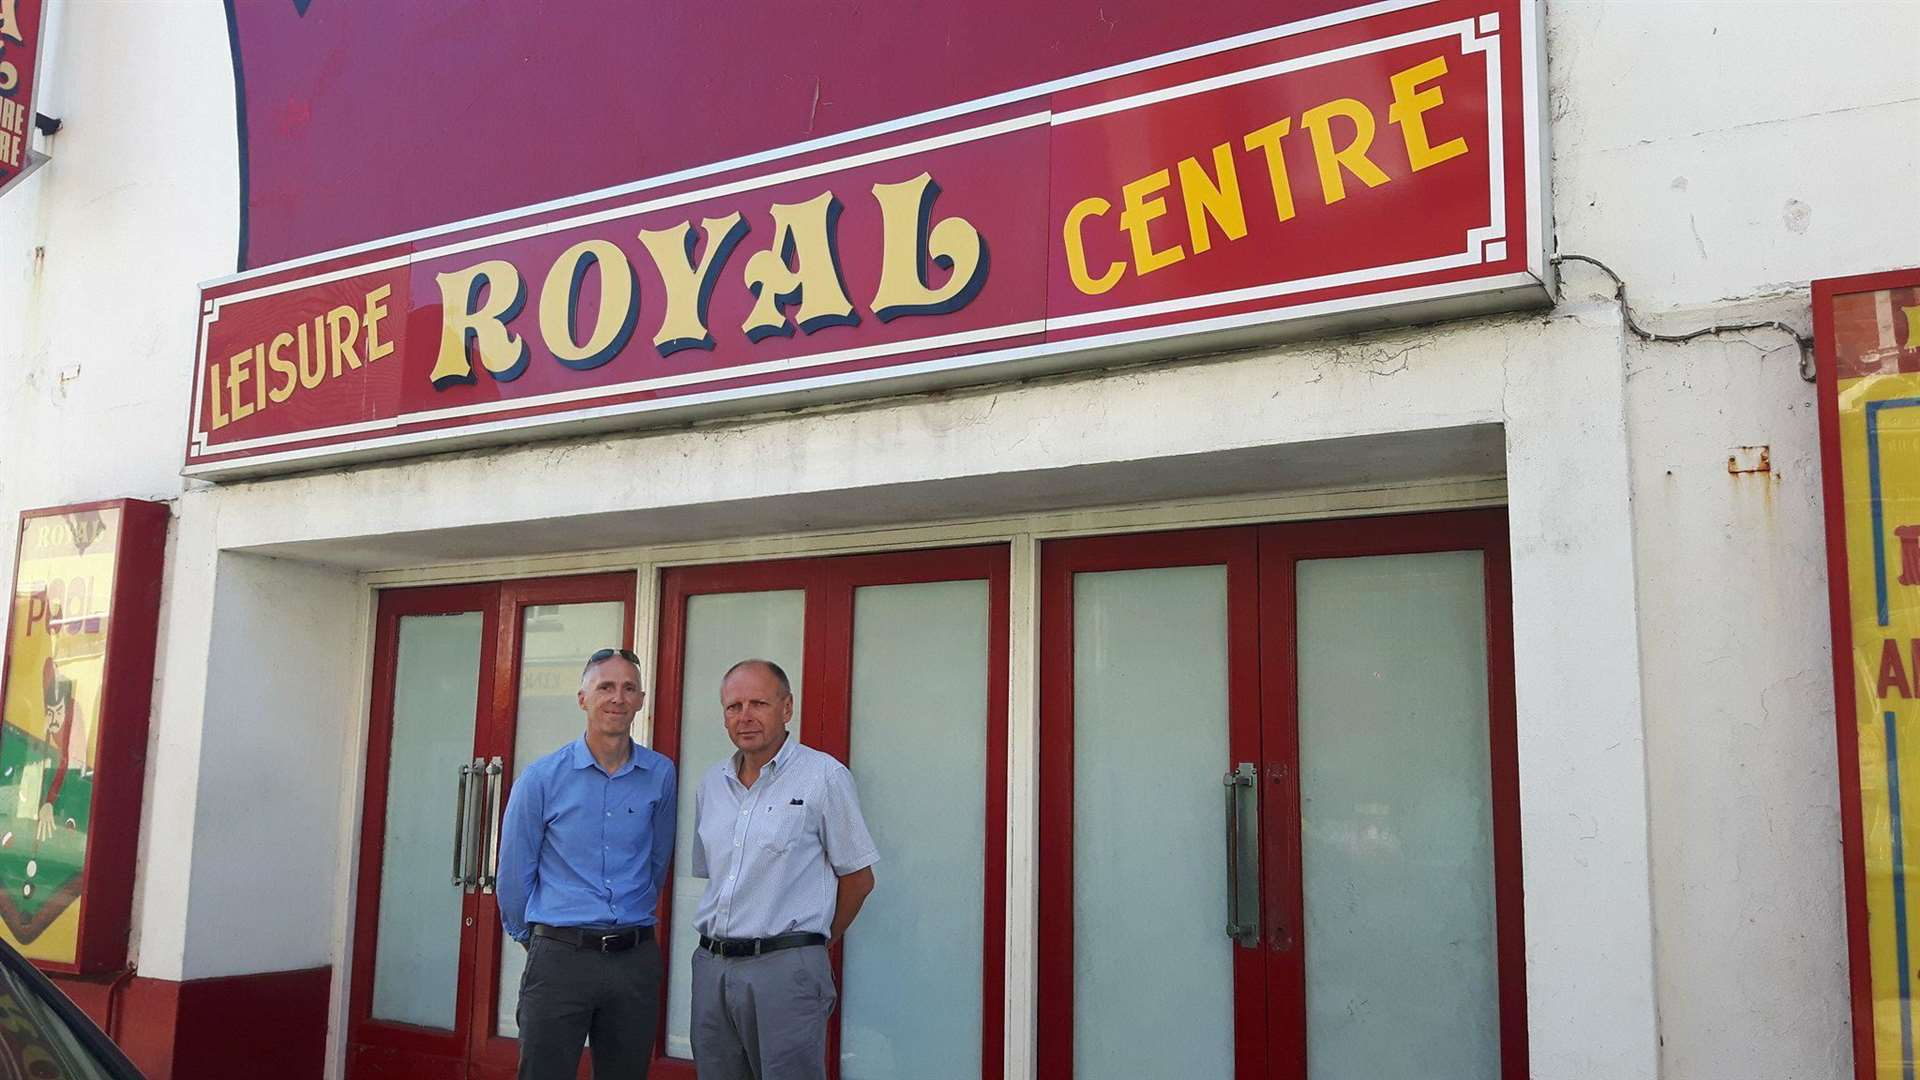 The Royal Leisure Centre in King Street, Deal, will be demolished to make way for 16 flats.